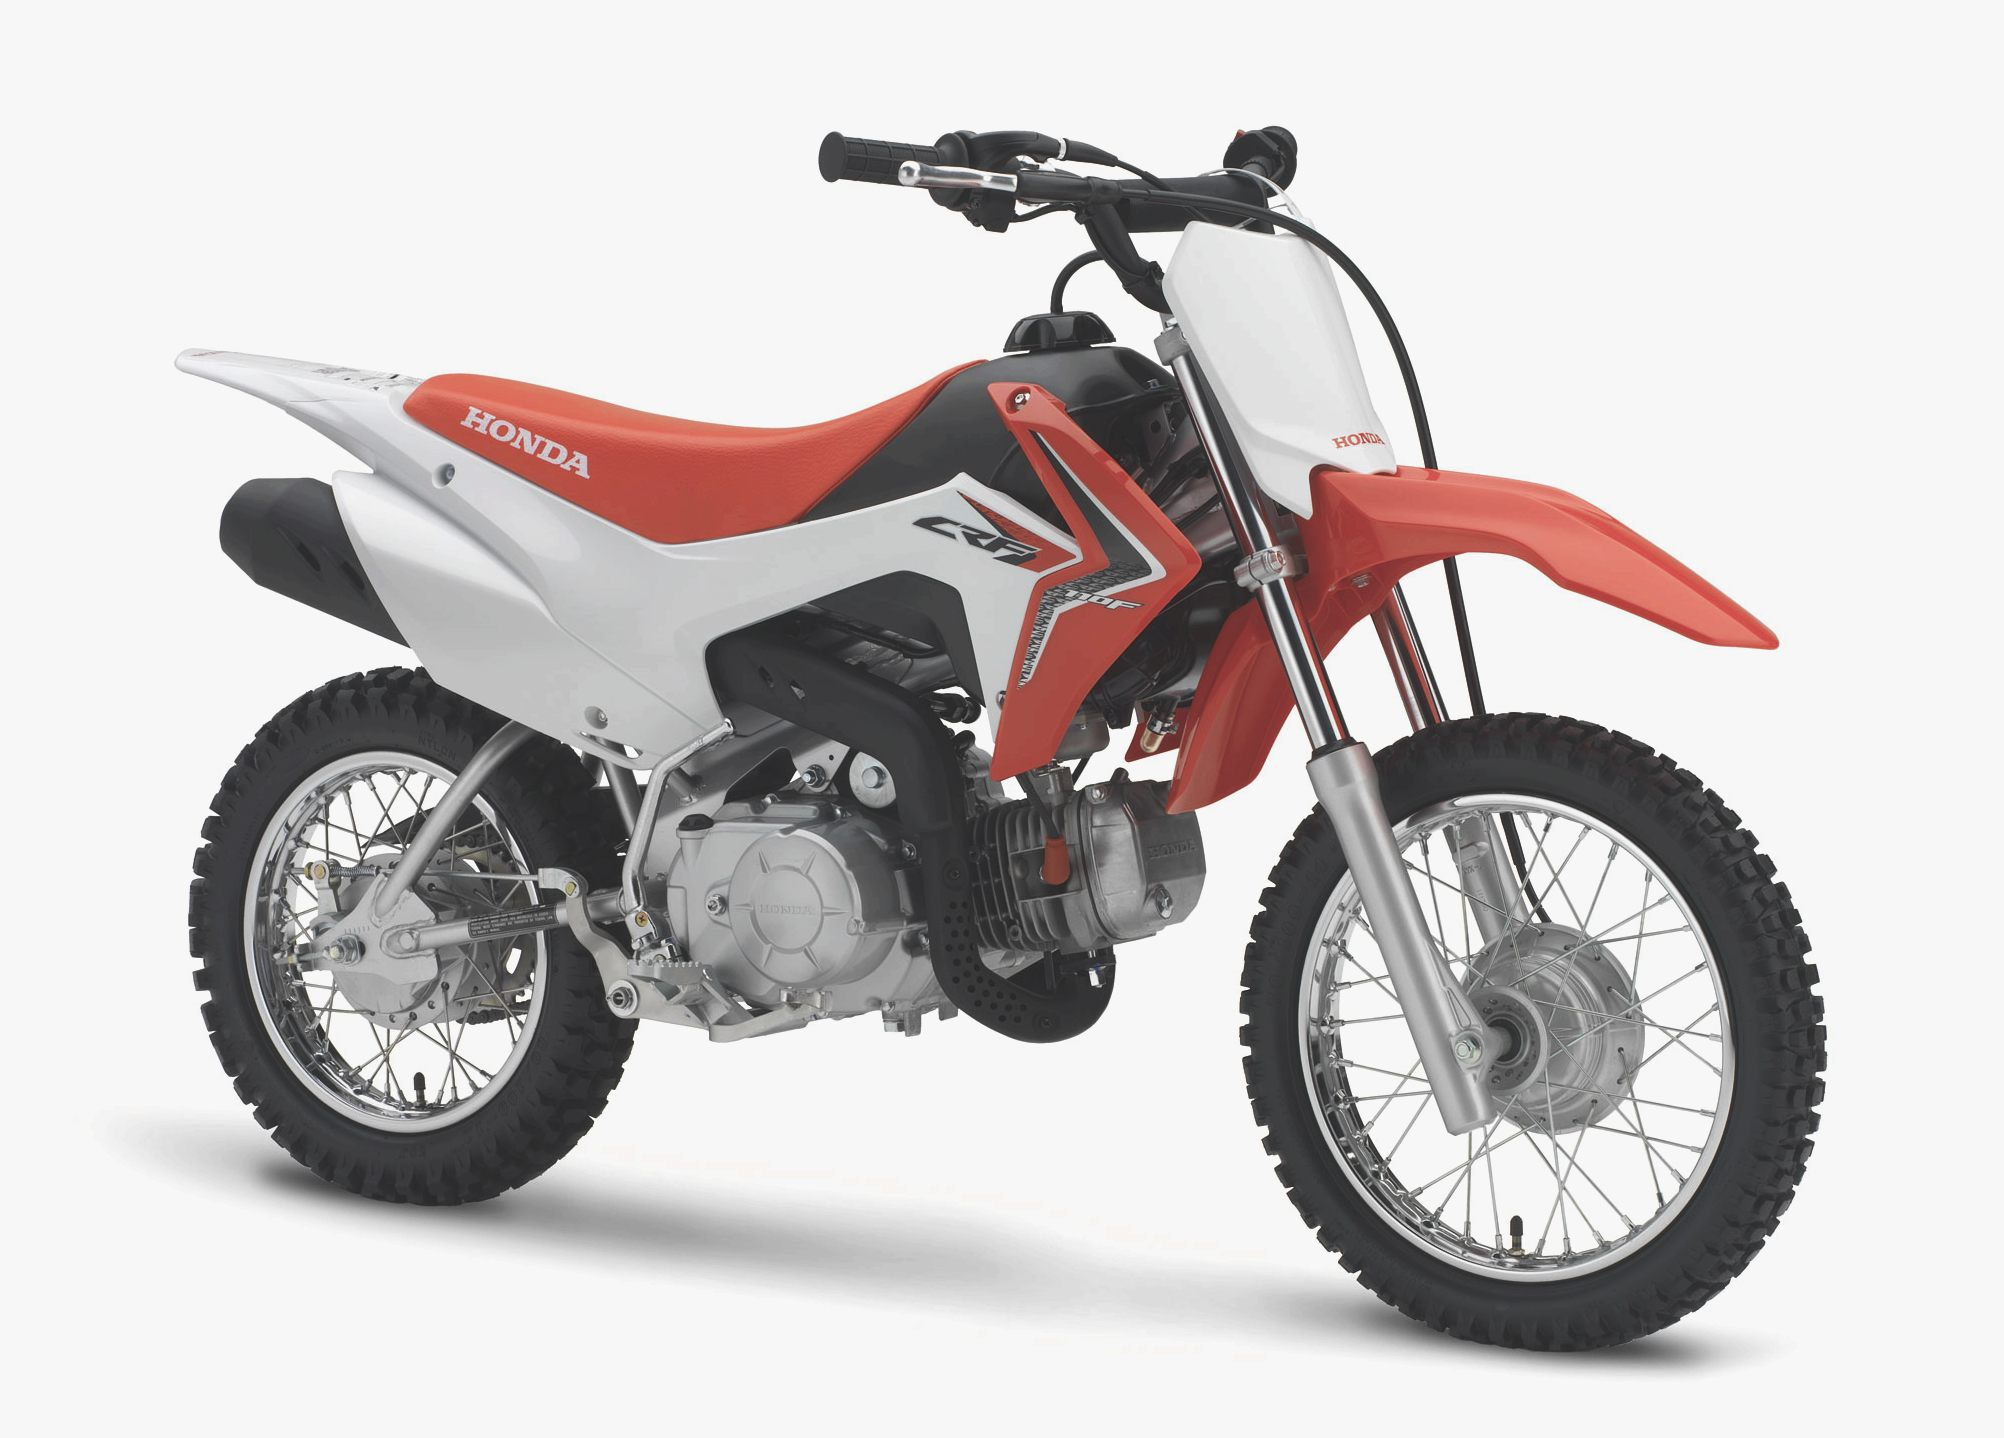 Fine Honda Crf 70 Just Another Car Photo Ideas Ibusinesslaw Wood Chair Design Ideas Ibusinesslaworg